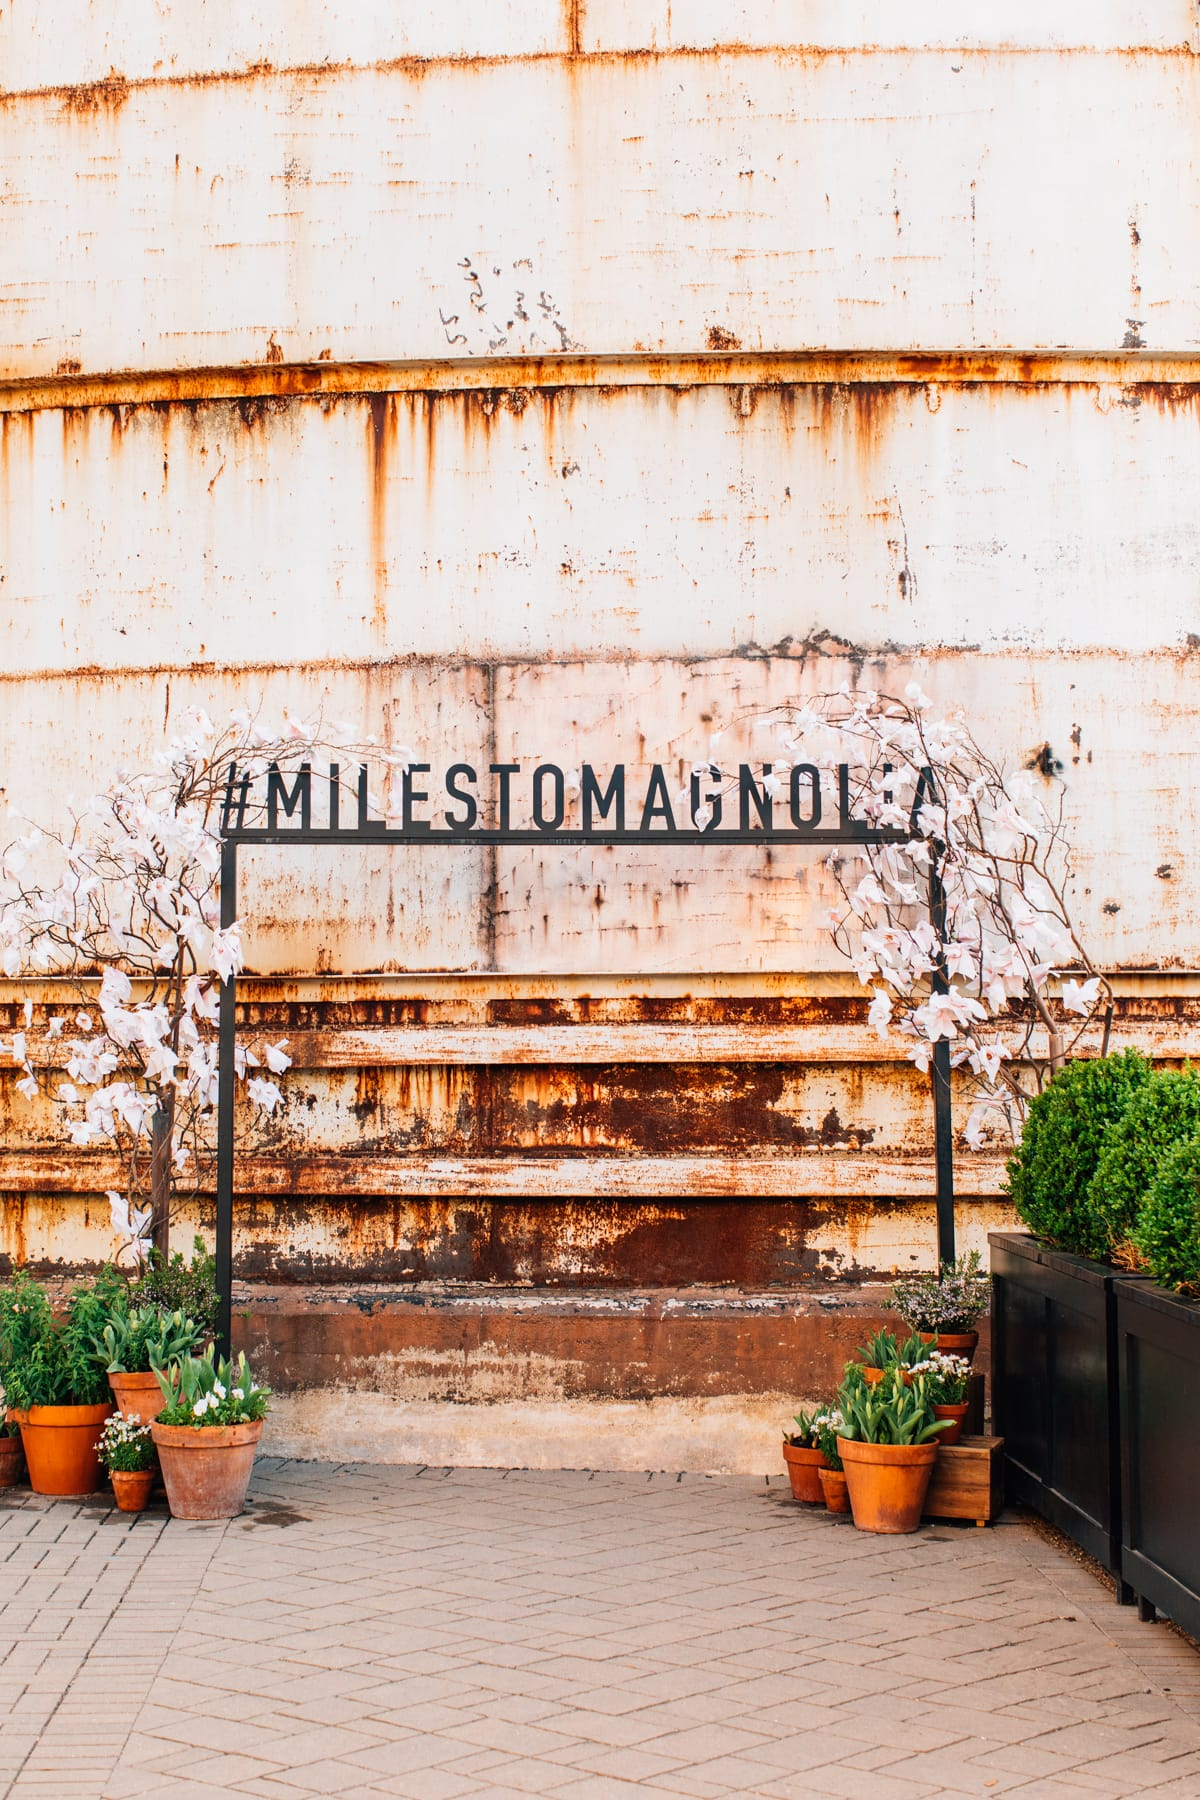 Texas Monthly + Magnolia Market Miles To Magnolia photo op signage from fixer upper's joanna gaines by top Houston lifestyle blogger Ashley Rose of Sugar & Cloth